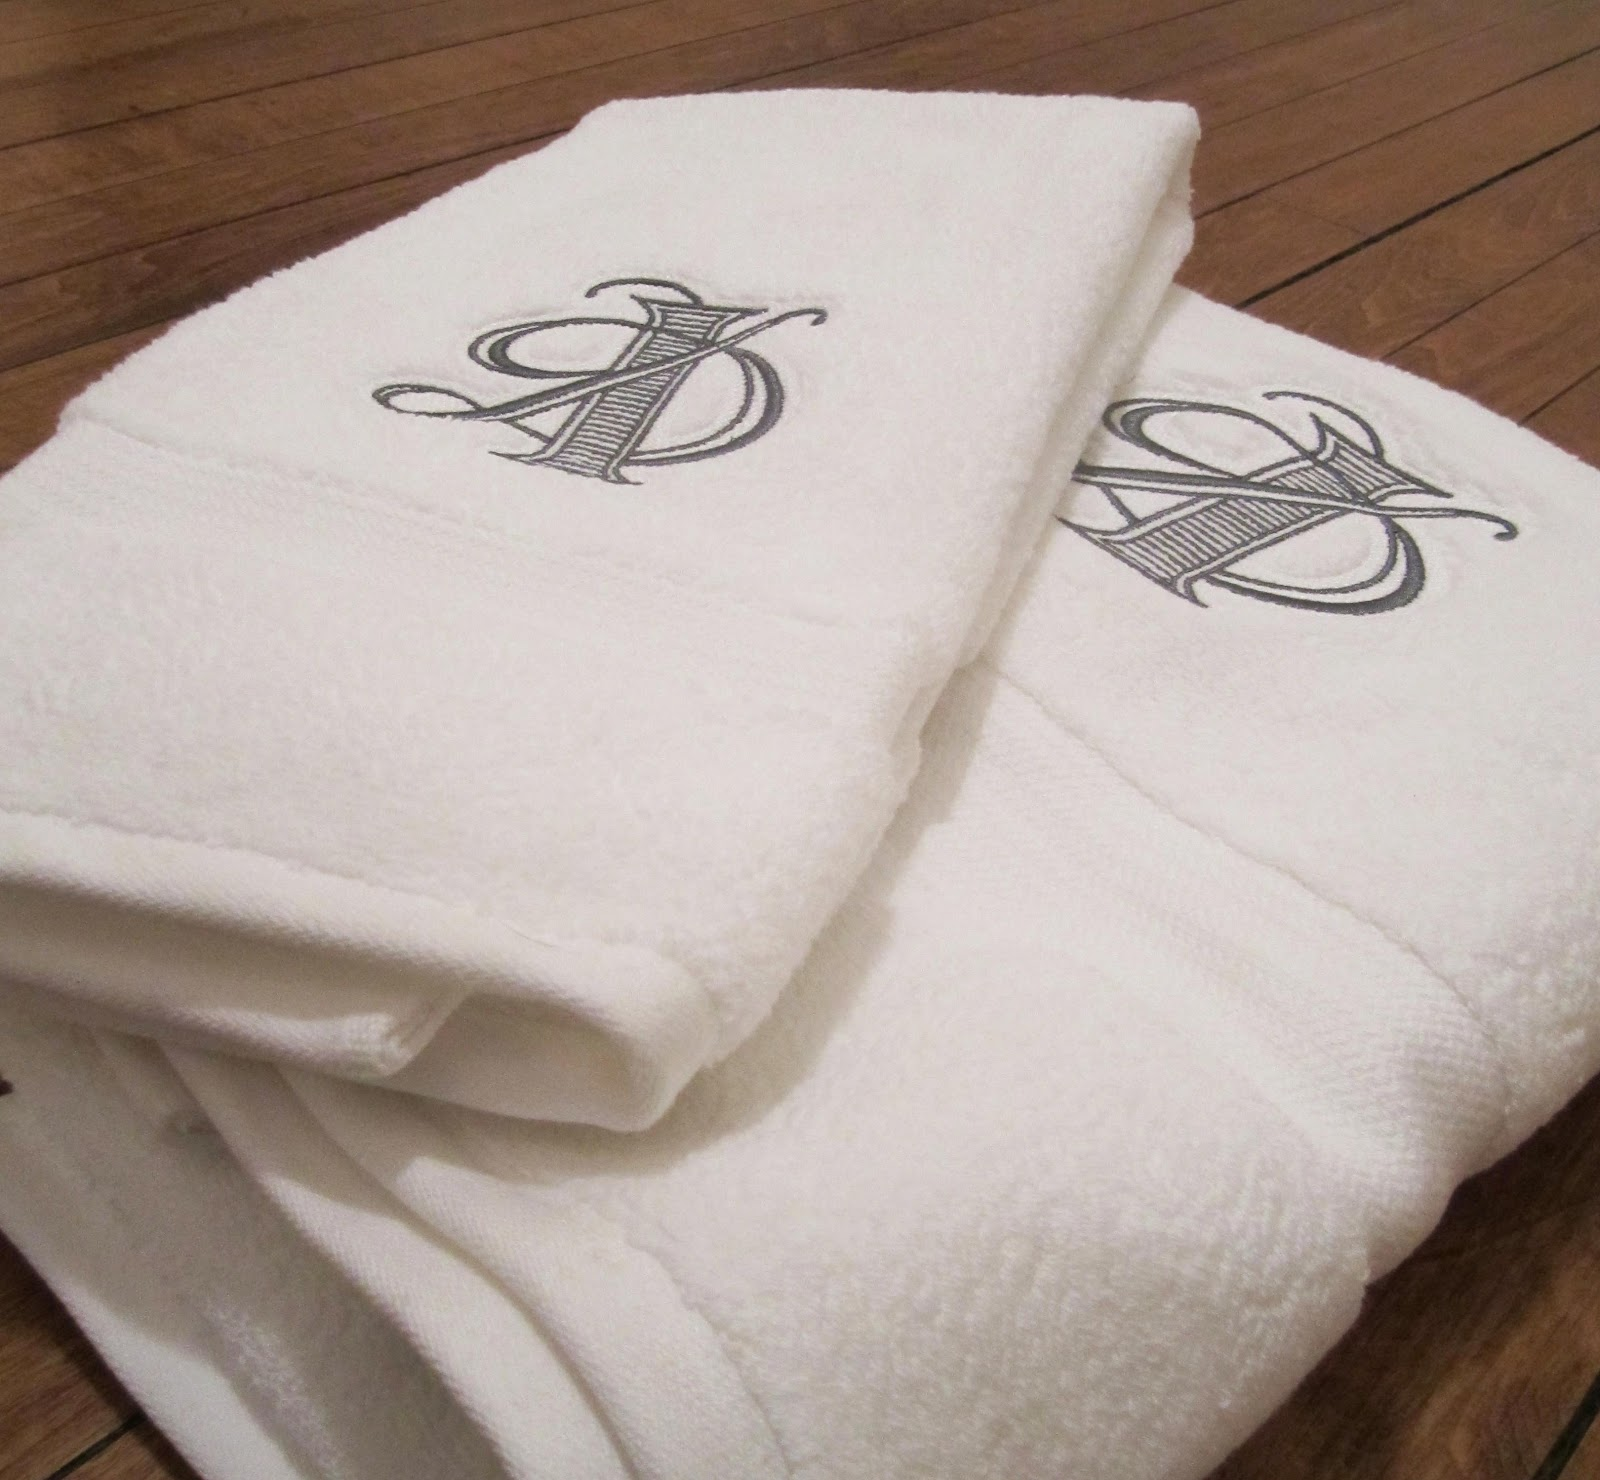 Embroidered Towels Online: Embroidered Towels